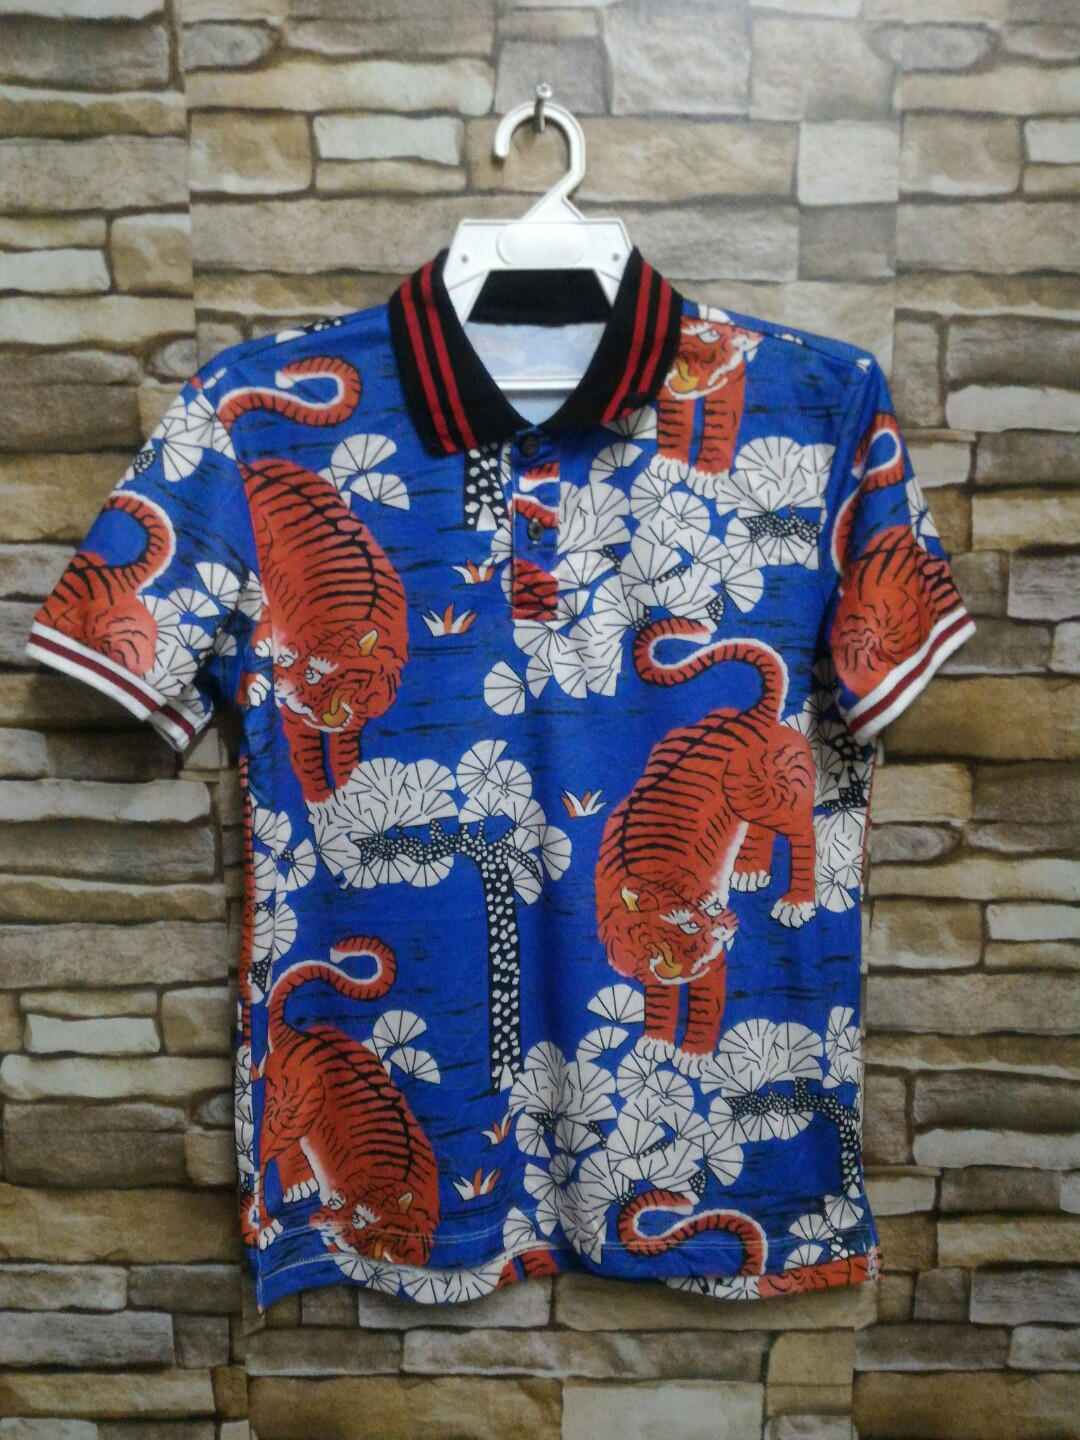 029e2eb0b Gucci bengal tiger polo tshirts shirts, Men's Fashion, Clothes, Tops on  Carousell